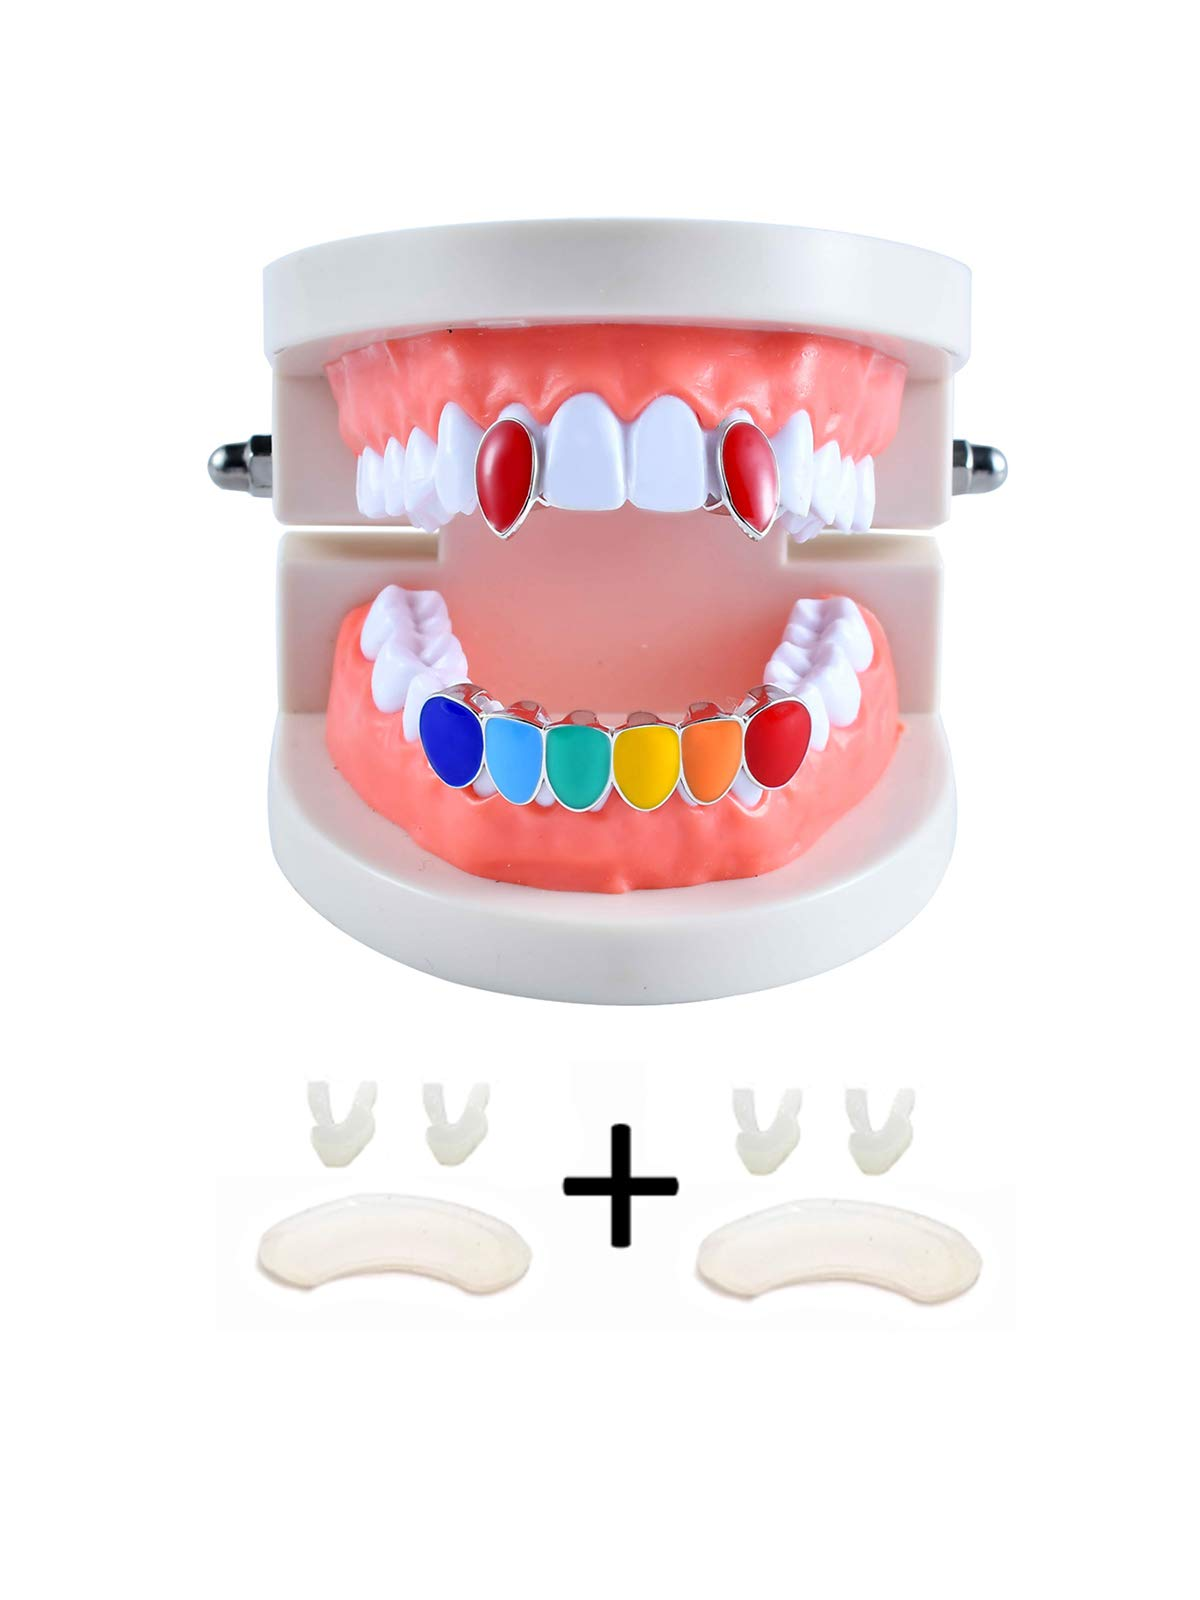 TSANLY Grillz Fangs Rainbow 6ix9ine Top & Bottom Grill Set 24k Gold Plated Vampire Teeth Storage Case + Microfiber Cloth by TSANLY